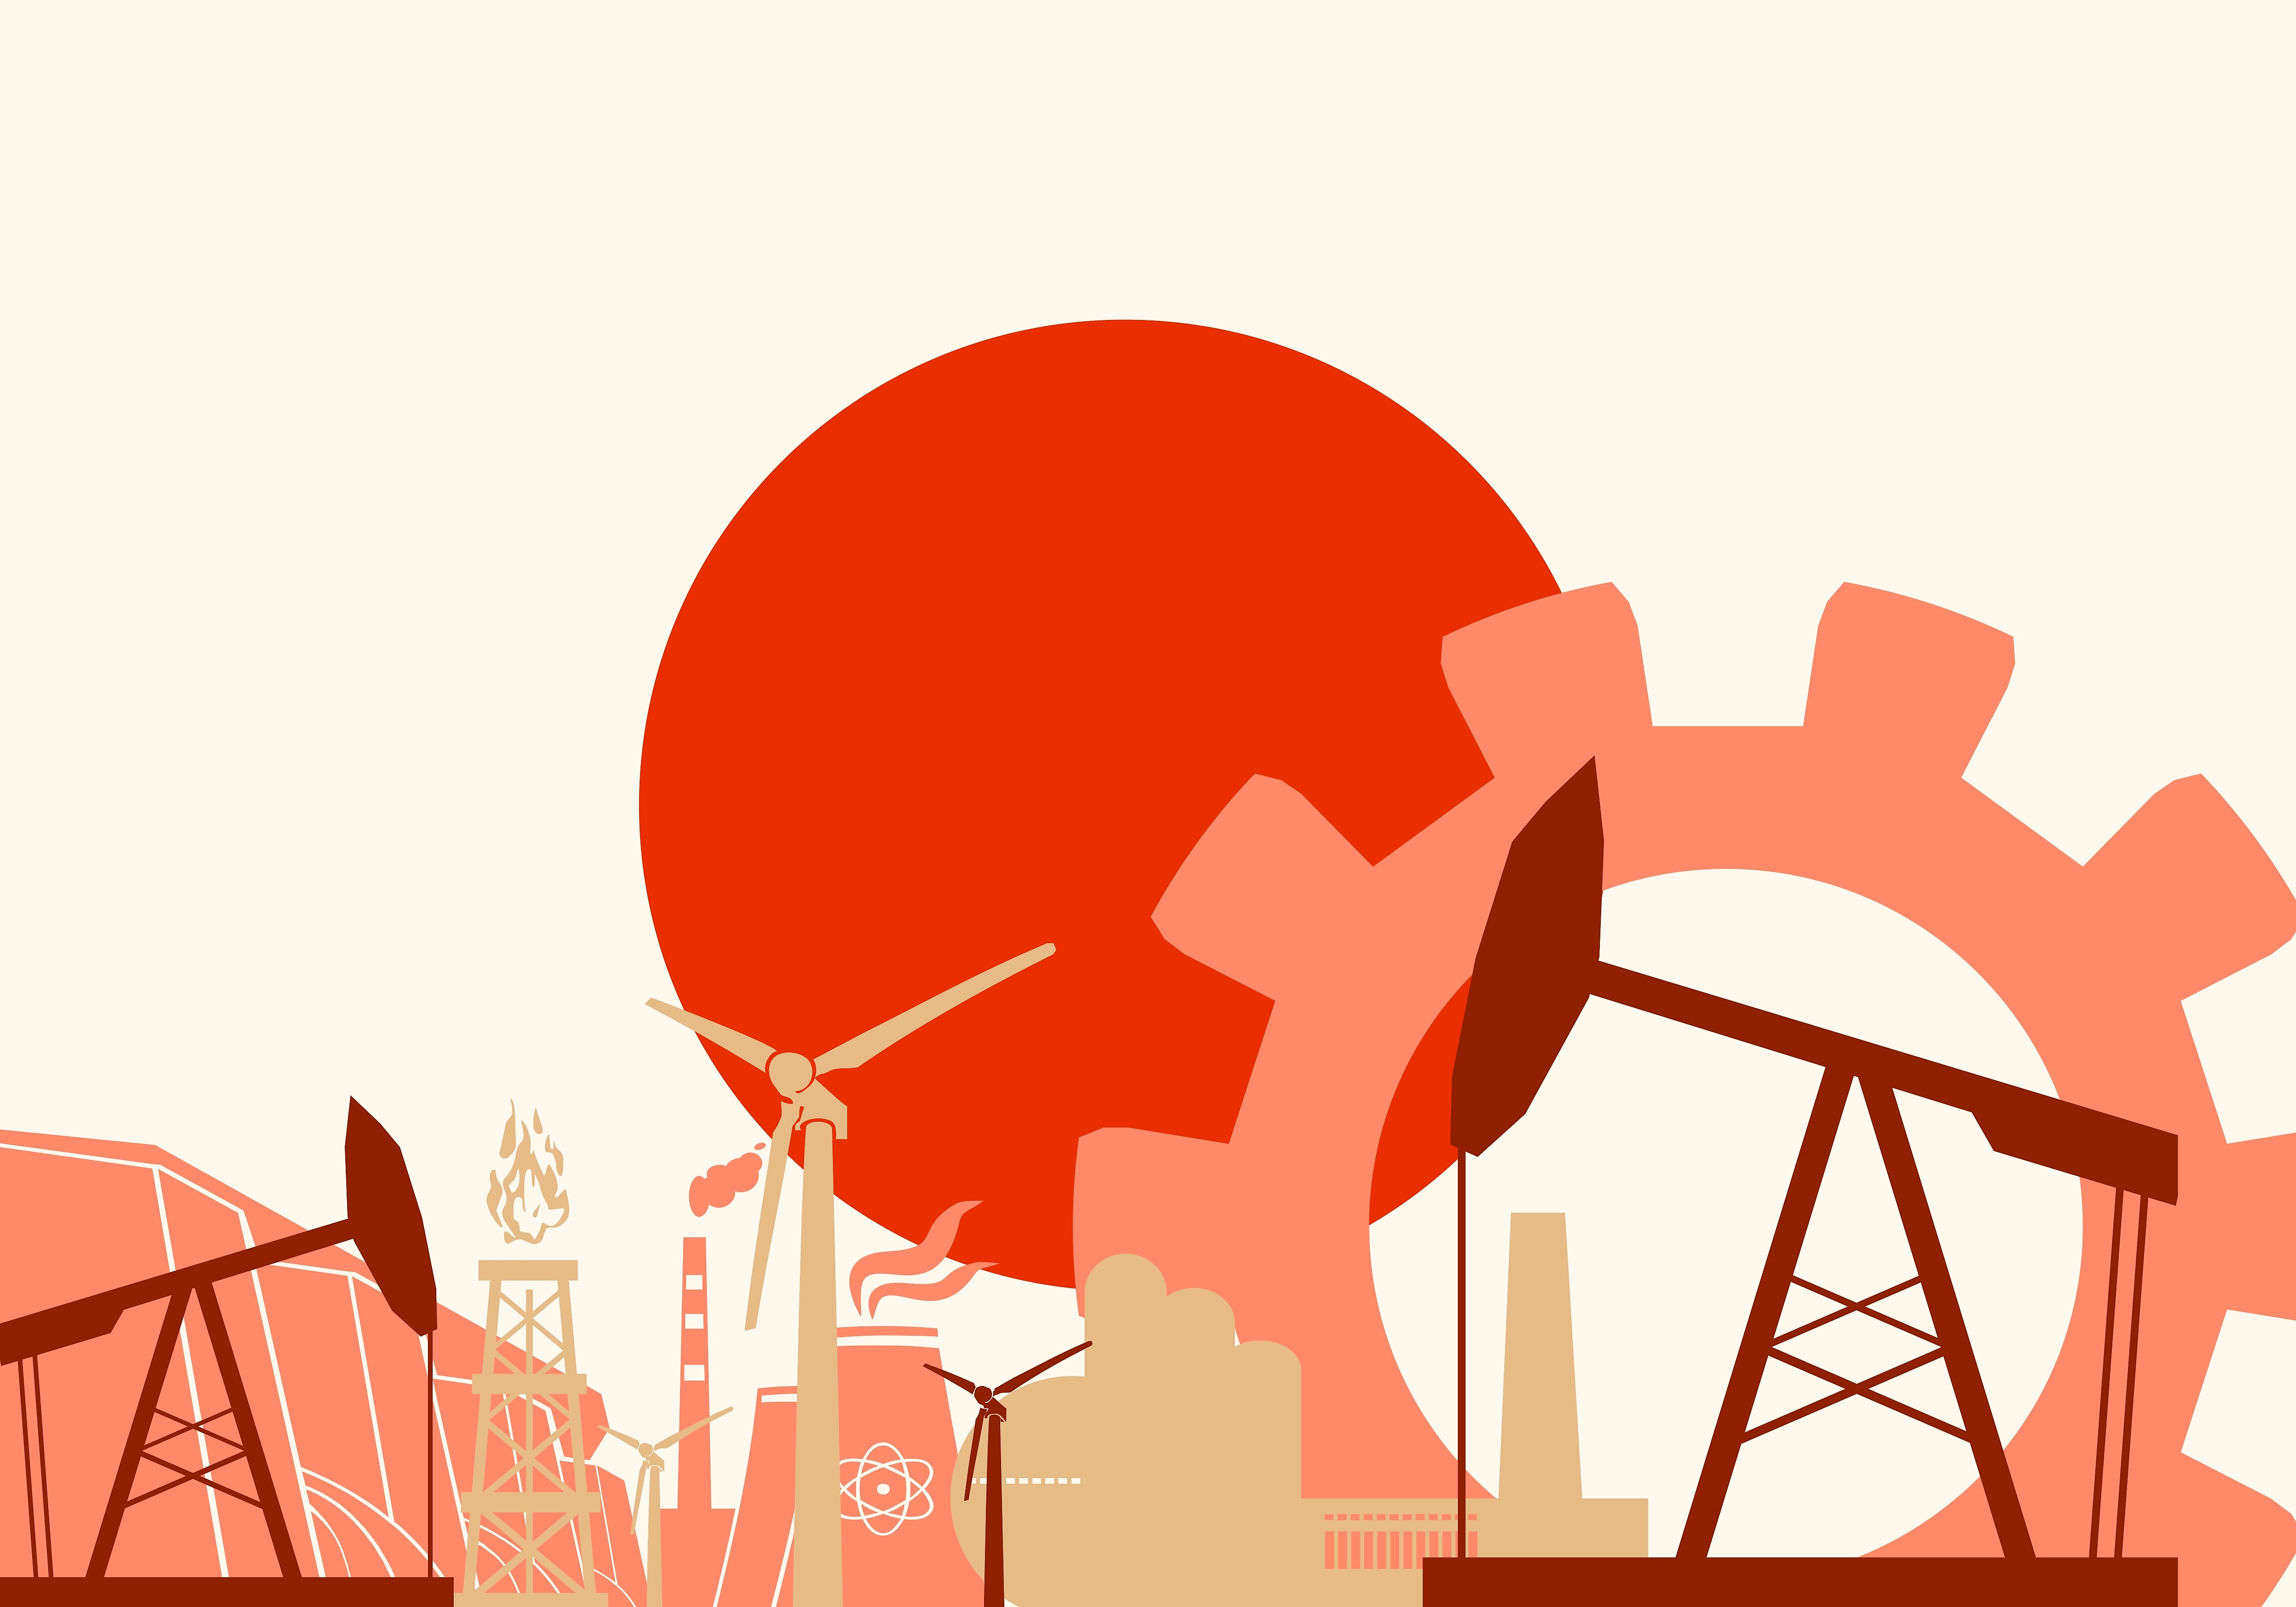 """Japan's Elusive Quest for a """"Balanced Energy Mix"""" and Middle East Energy Relations"""